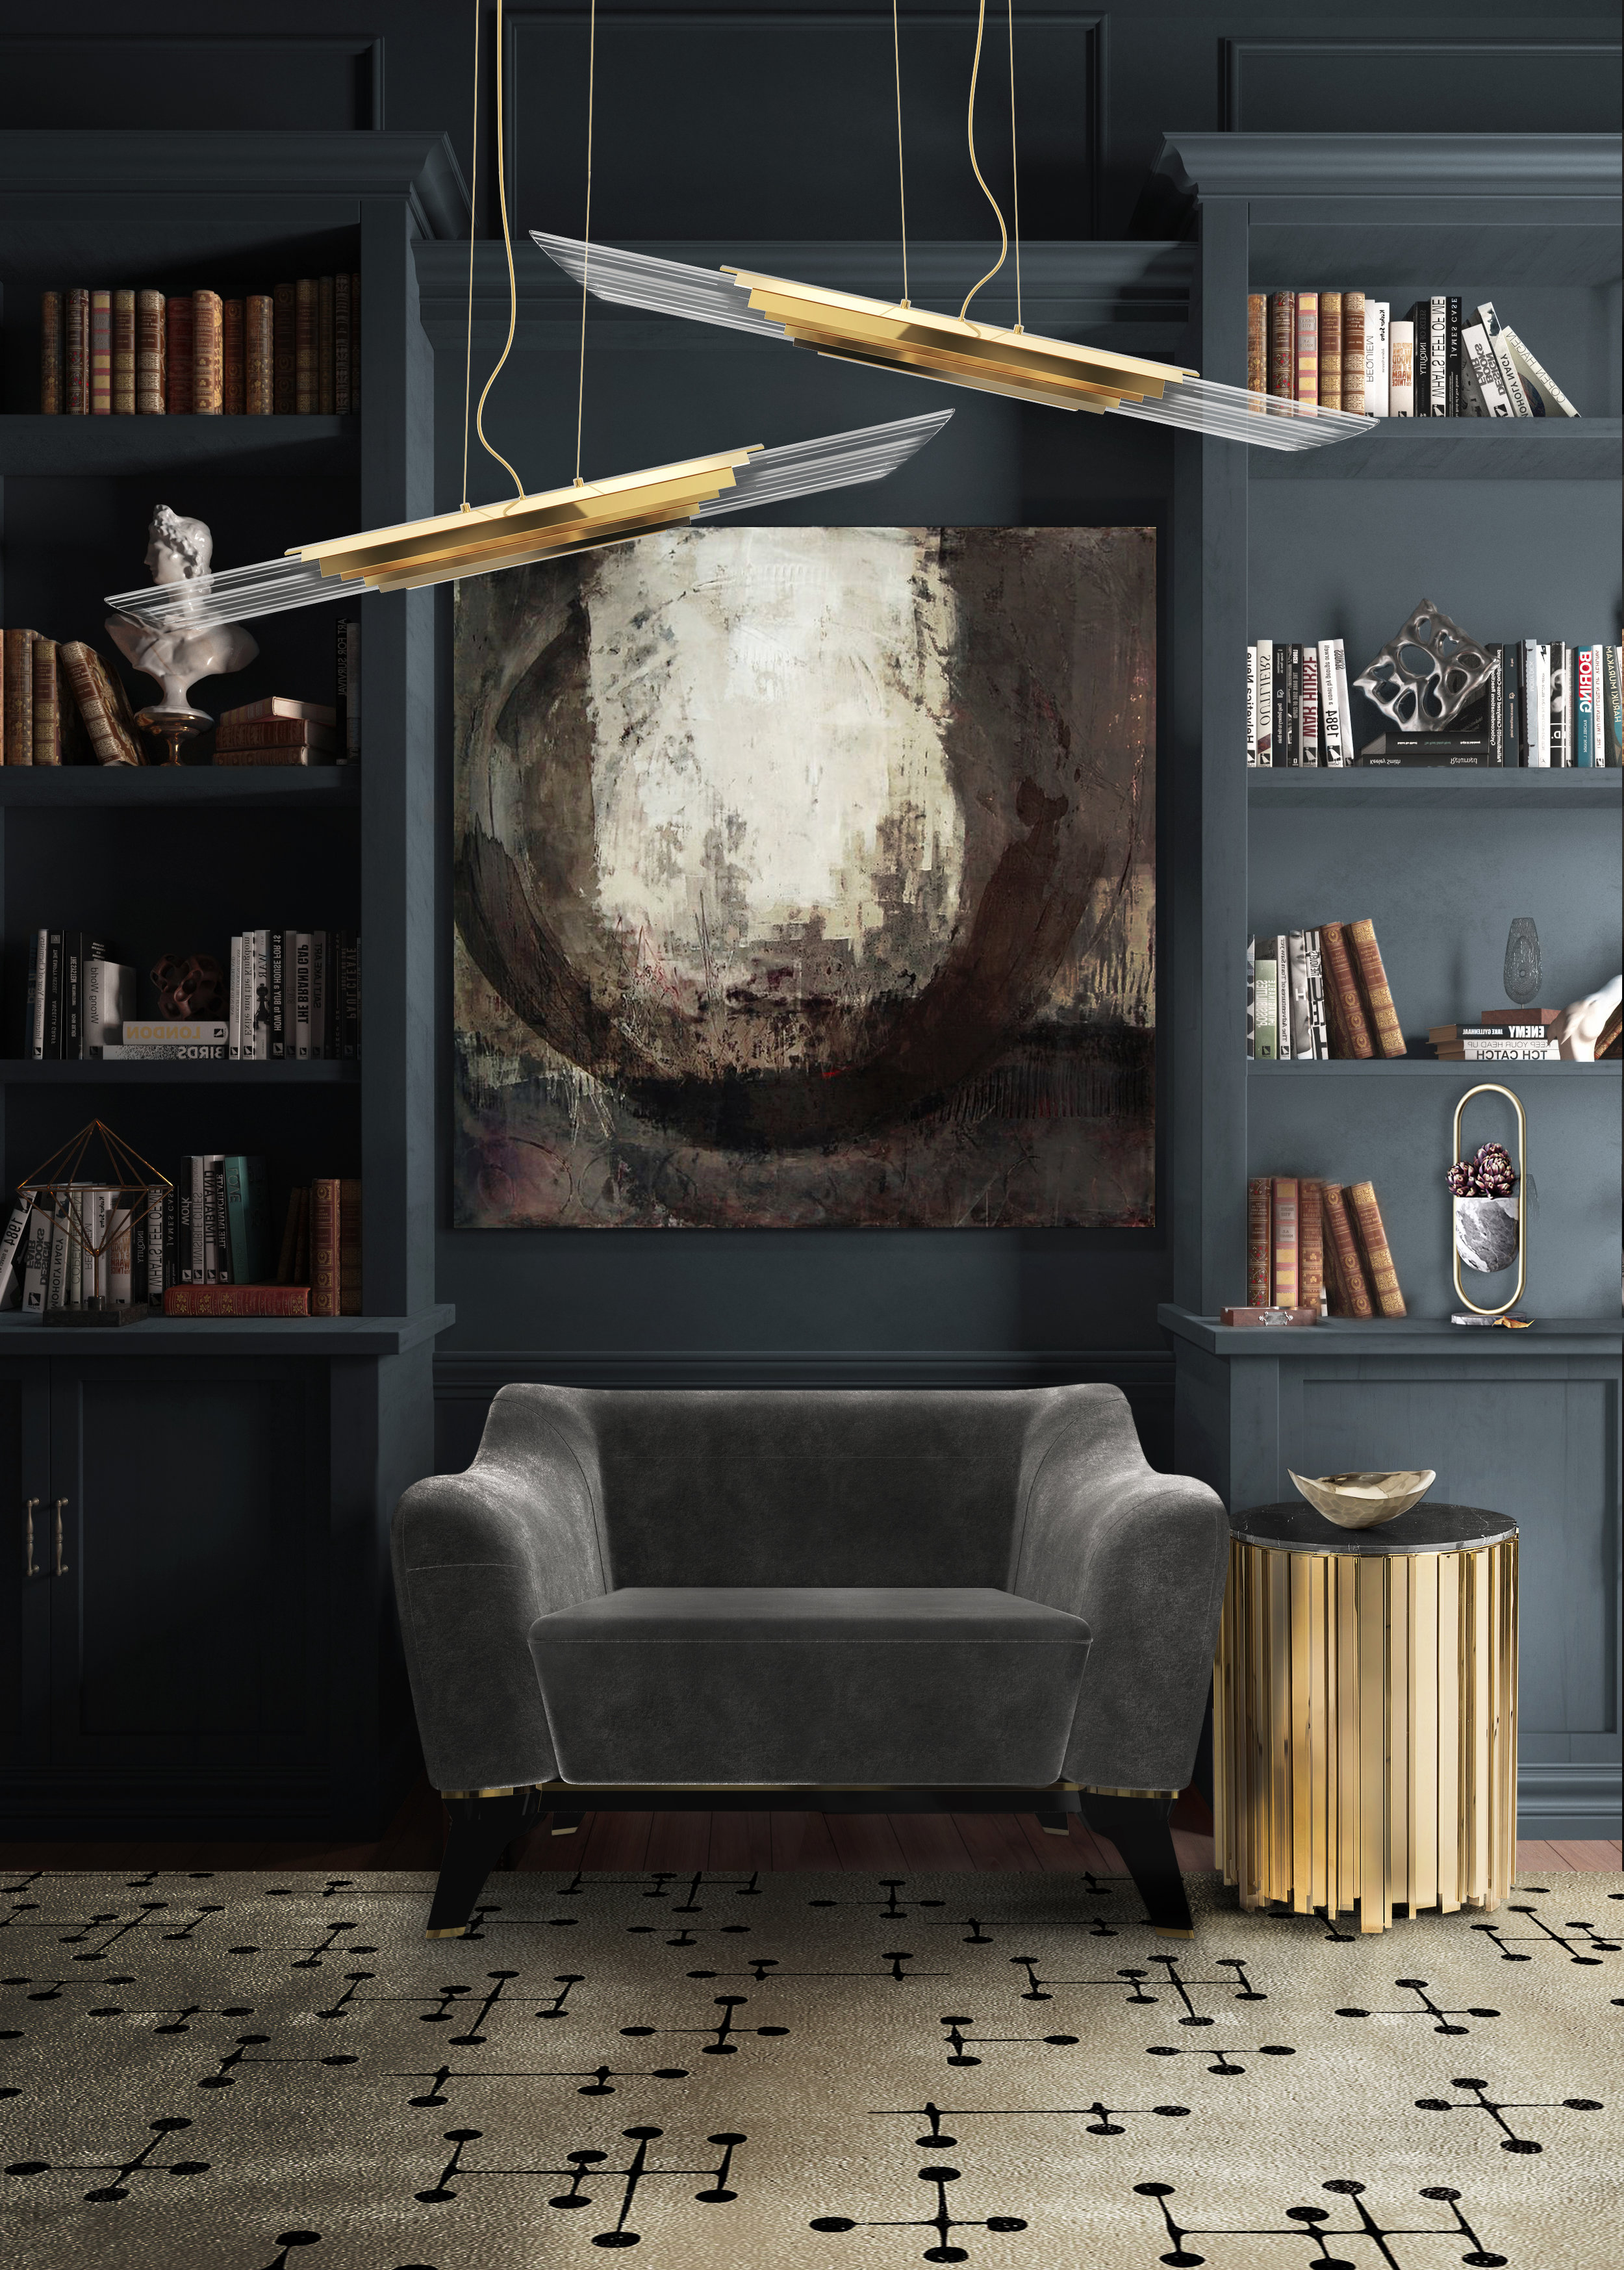 TRANSFORM YOUR HOME OR OFFICE INTO AN ART DECO HAVEN WITH LUXXU